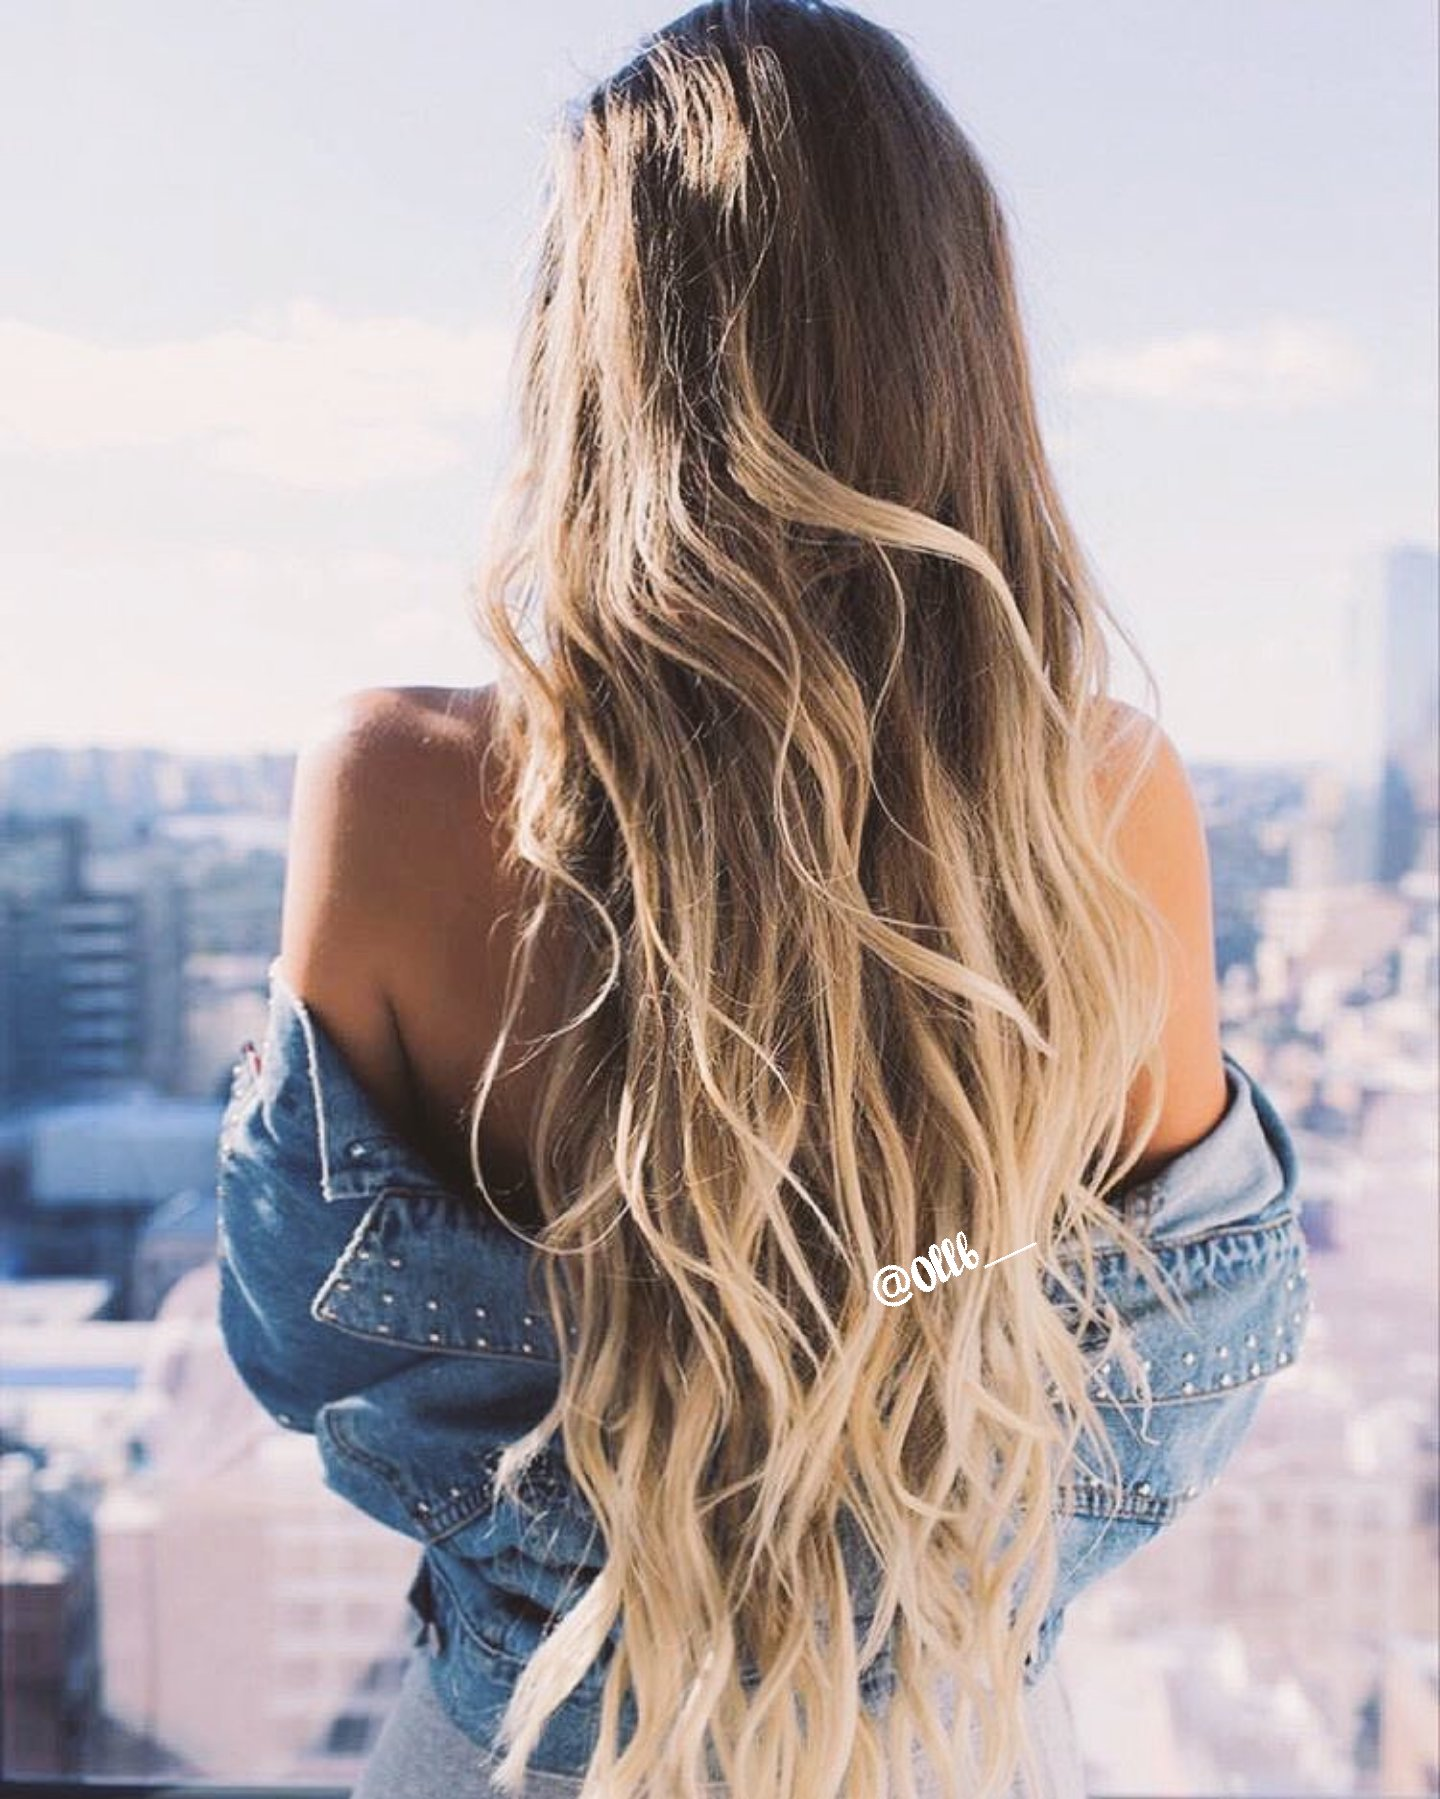 beautiful hair tumblr - 640×790